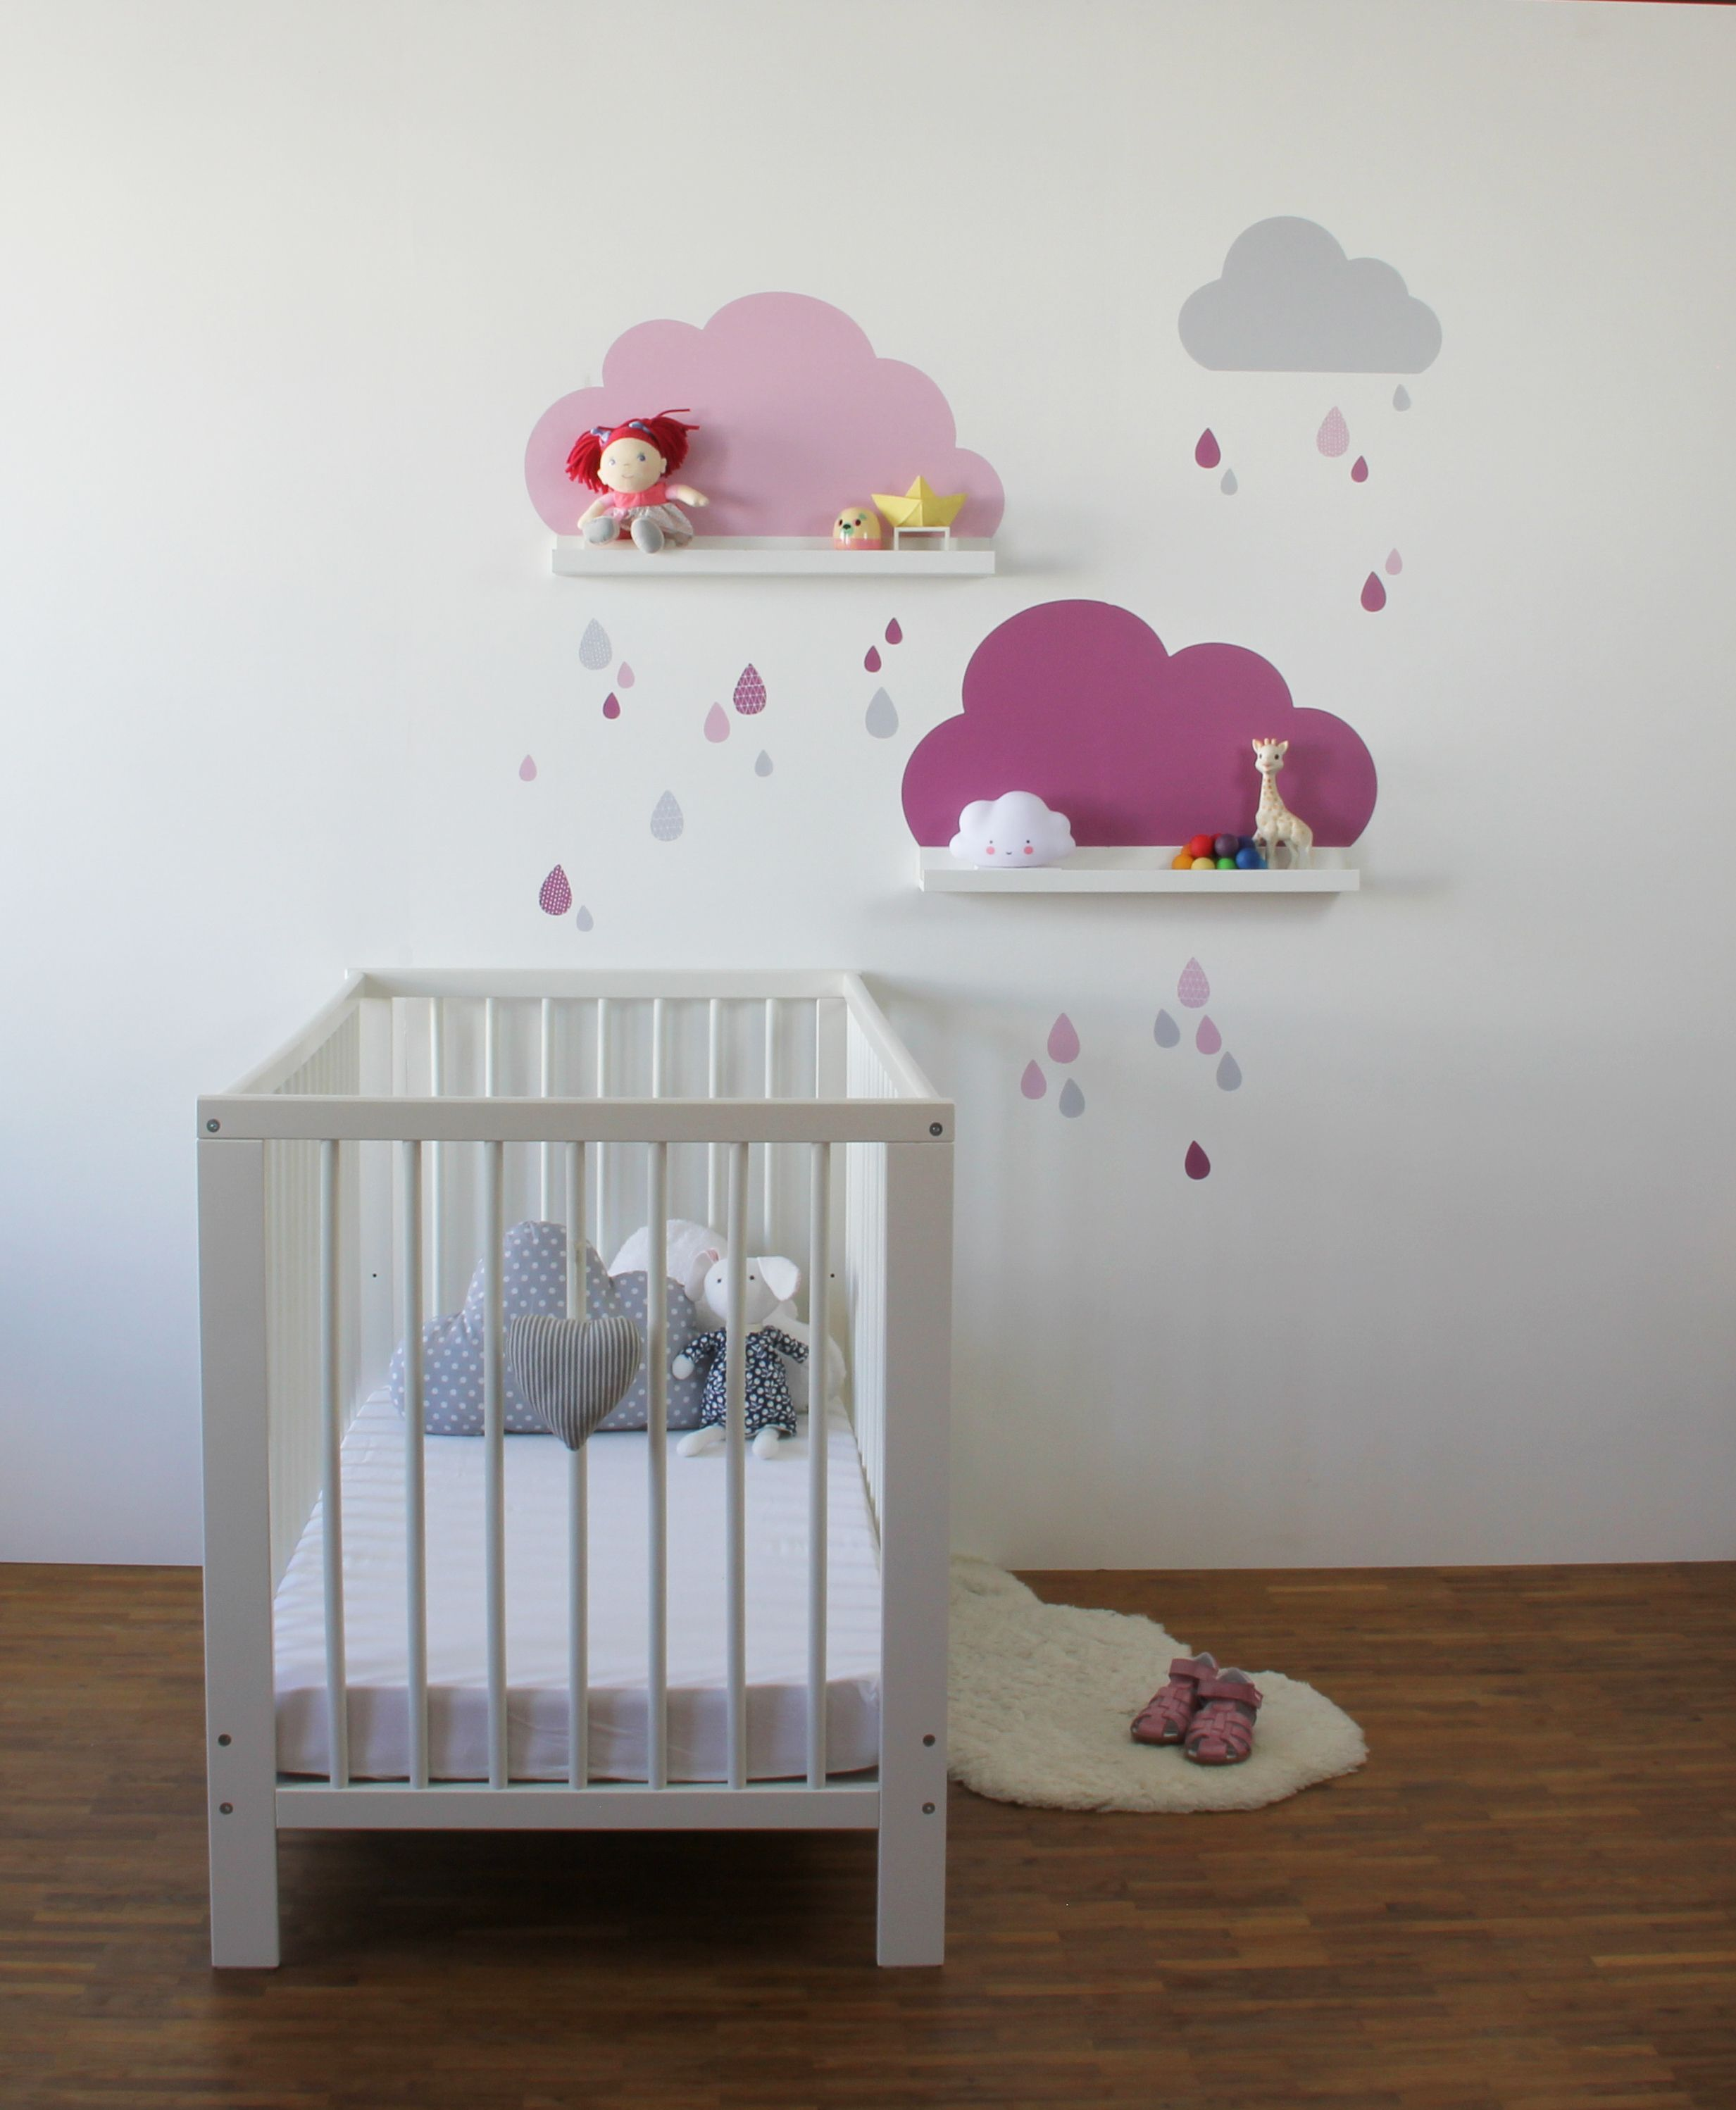 s e deko nicht nur f rs babyzimmer die wolken wandtattoos passen perfekt zu den ikea. Black Bedroom Furniture Sets. Home Design Ideas